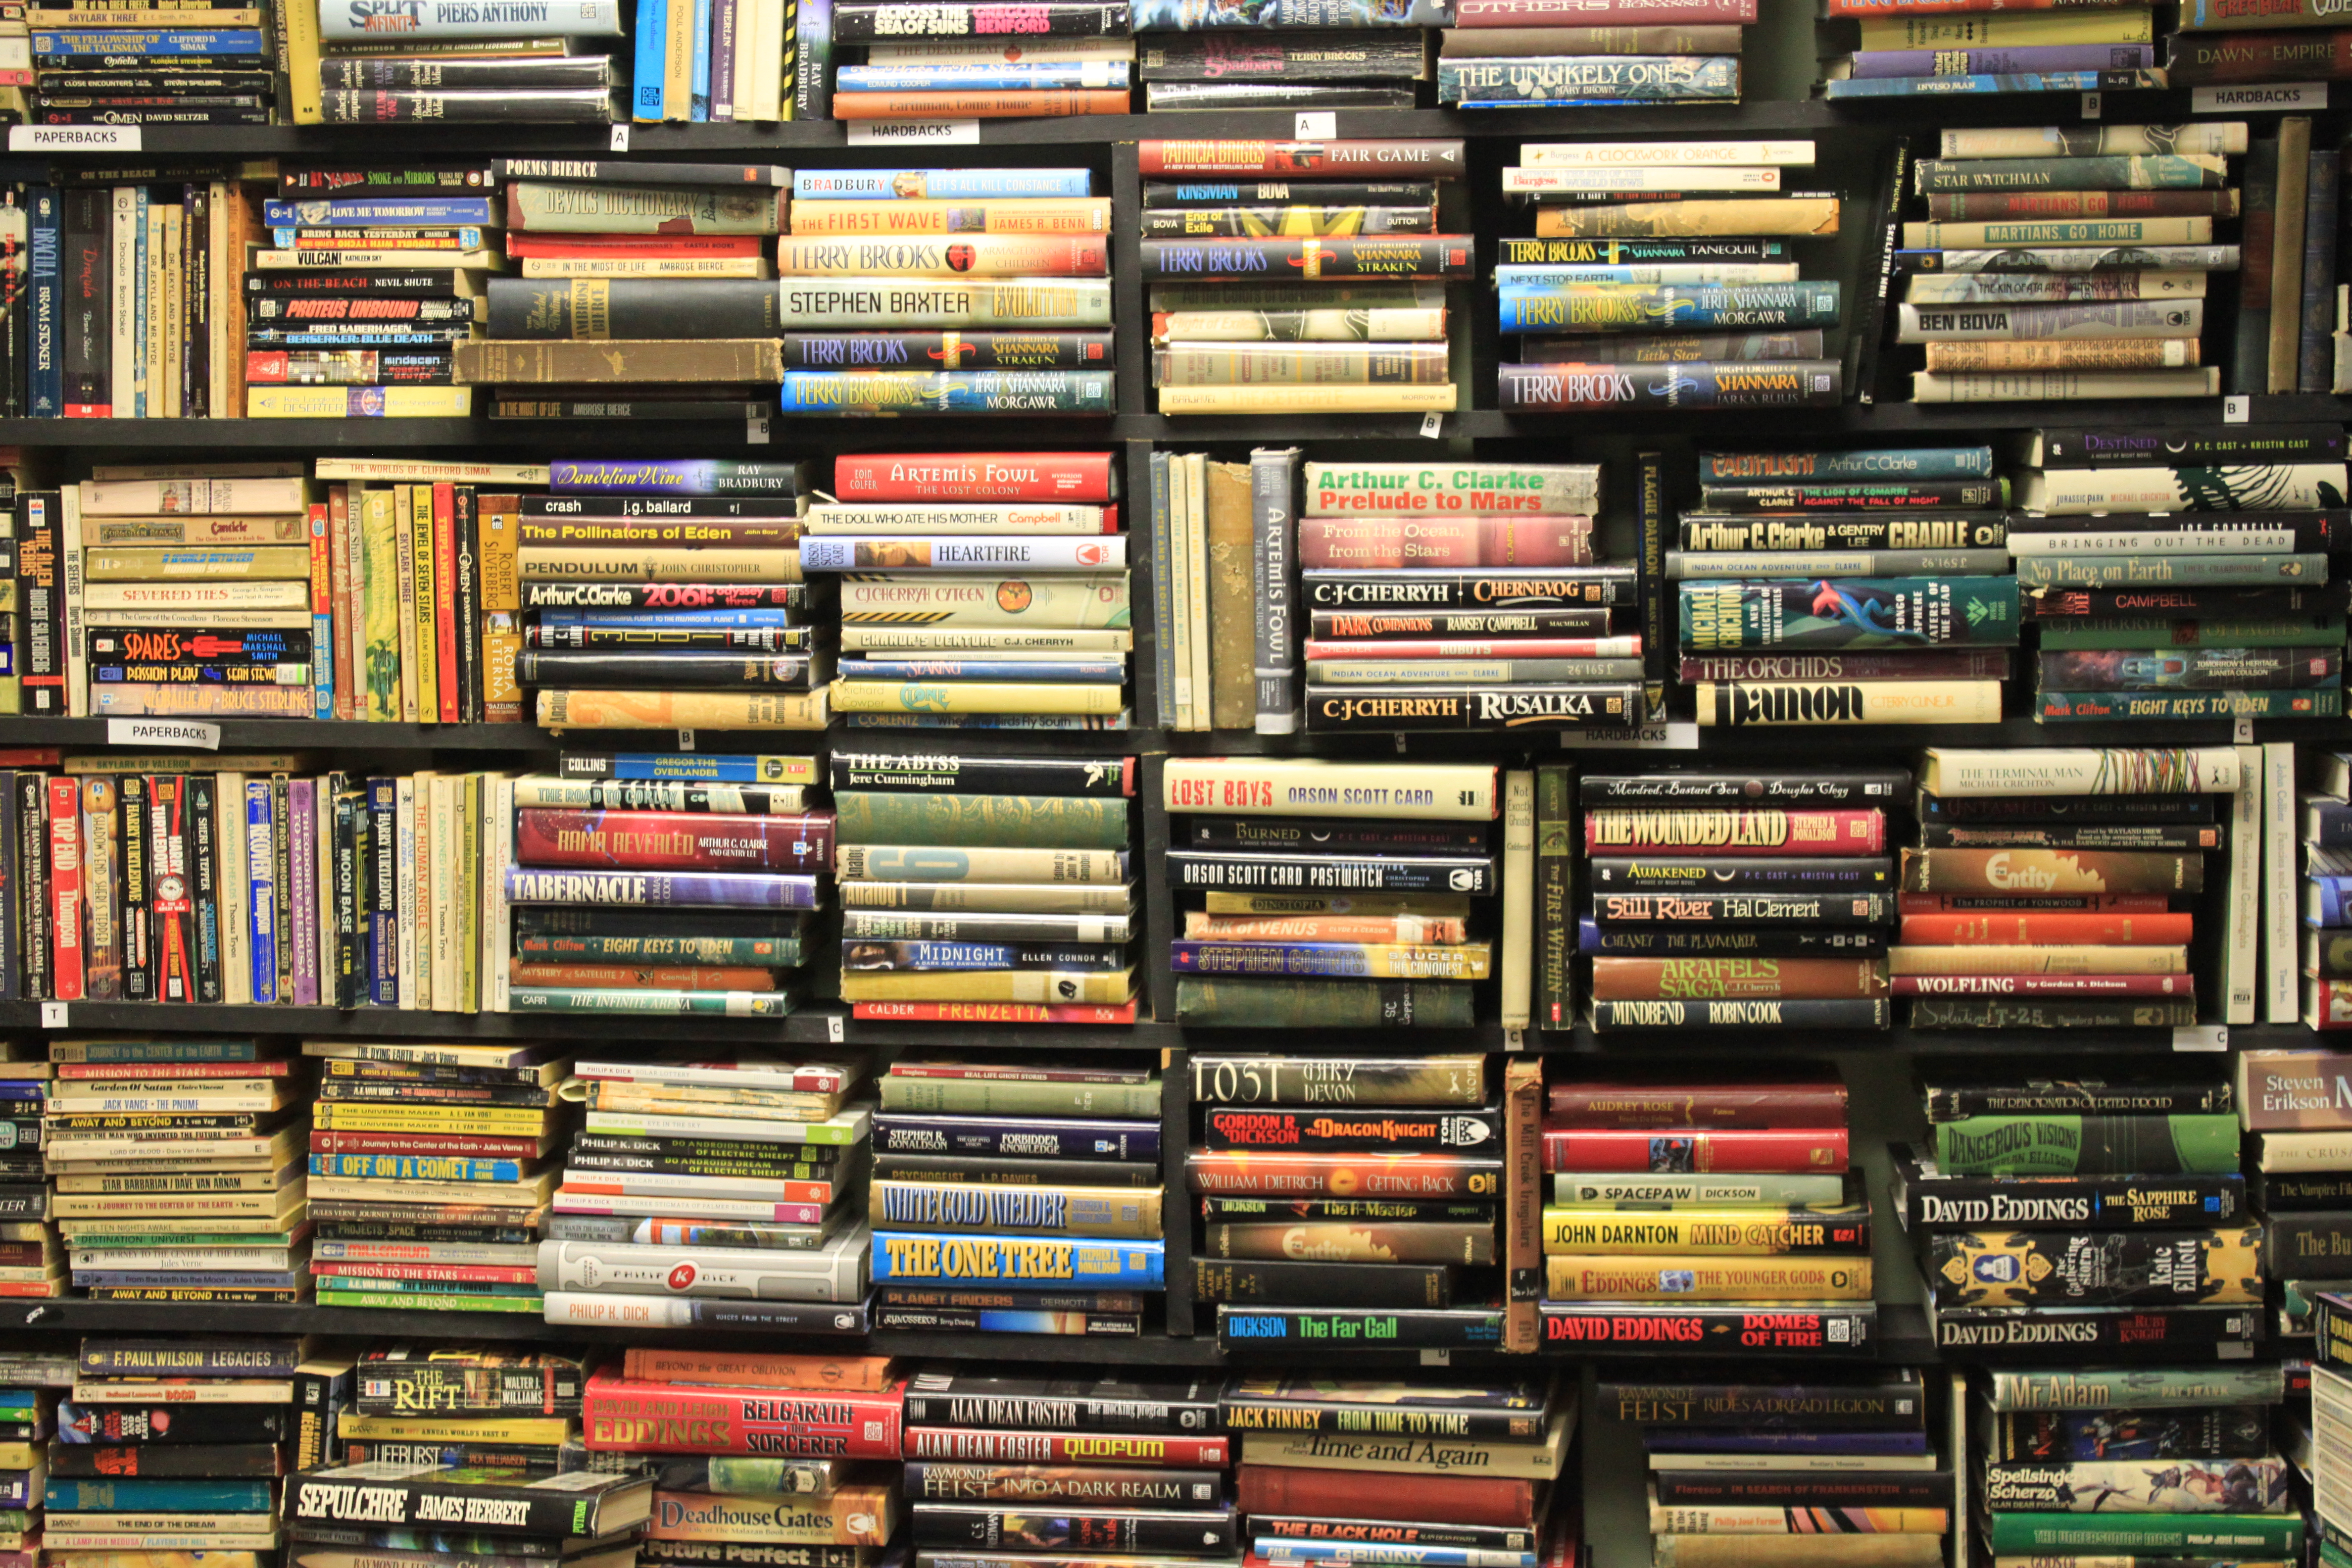 Thousands of books